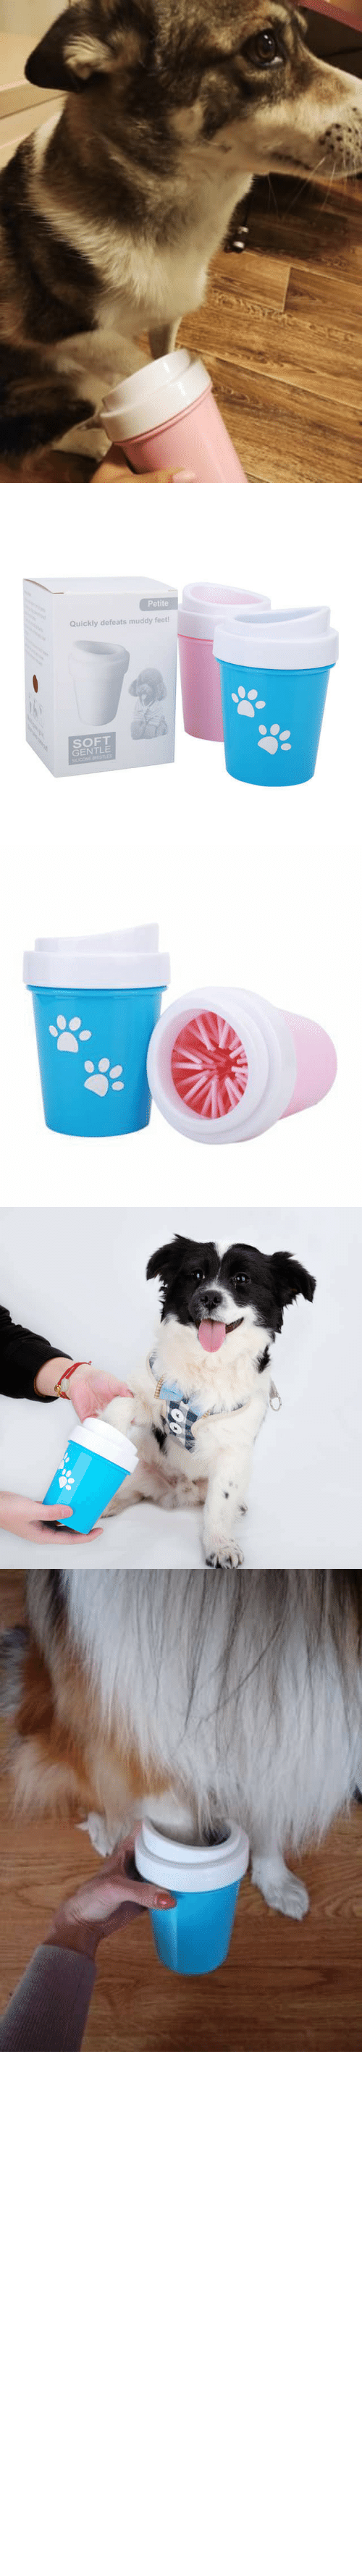 "Home: awesomage:   PAW CLEANER     Now your best friend can have all the muddy dirty fun he wants without bringing it all into your home or vehicle.    30% OFF plus Free Worldwide Shipping with coupon code ""CUDDLING""    All funds gathered will be donated for rescue dog shelters    SUPPORTS US NOW, ORDER AND SHARE OUR CAUSE!https://www.doggiemon.com/products/paw-cleaner"